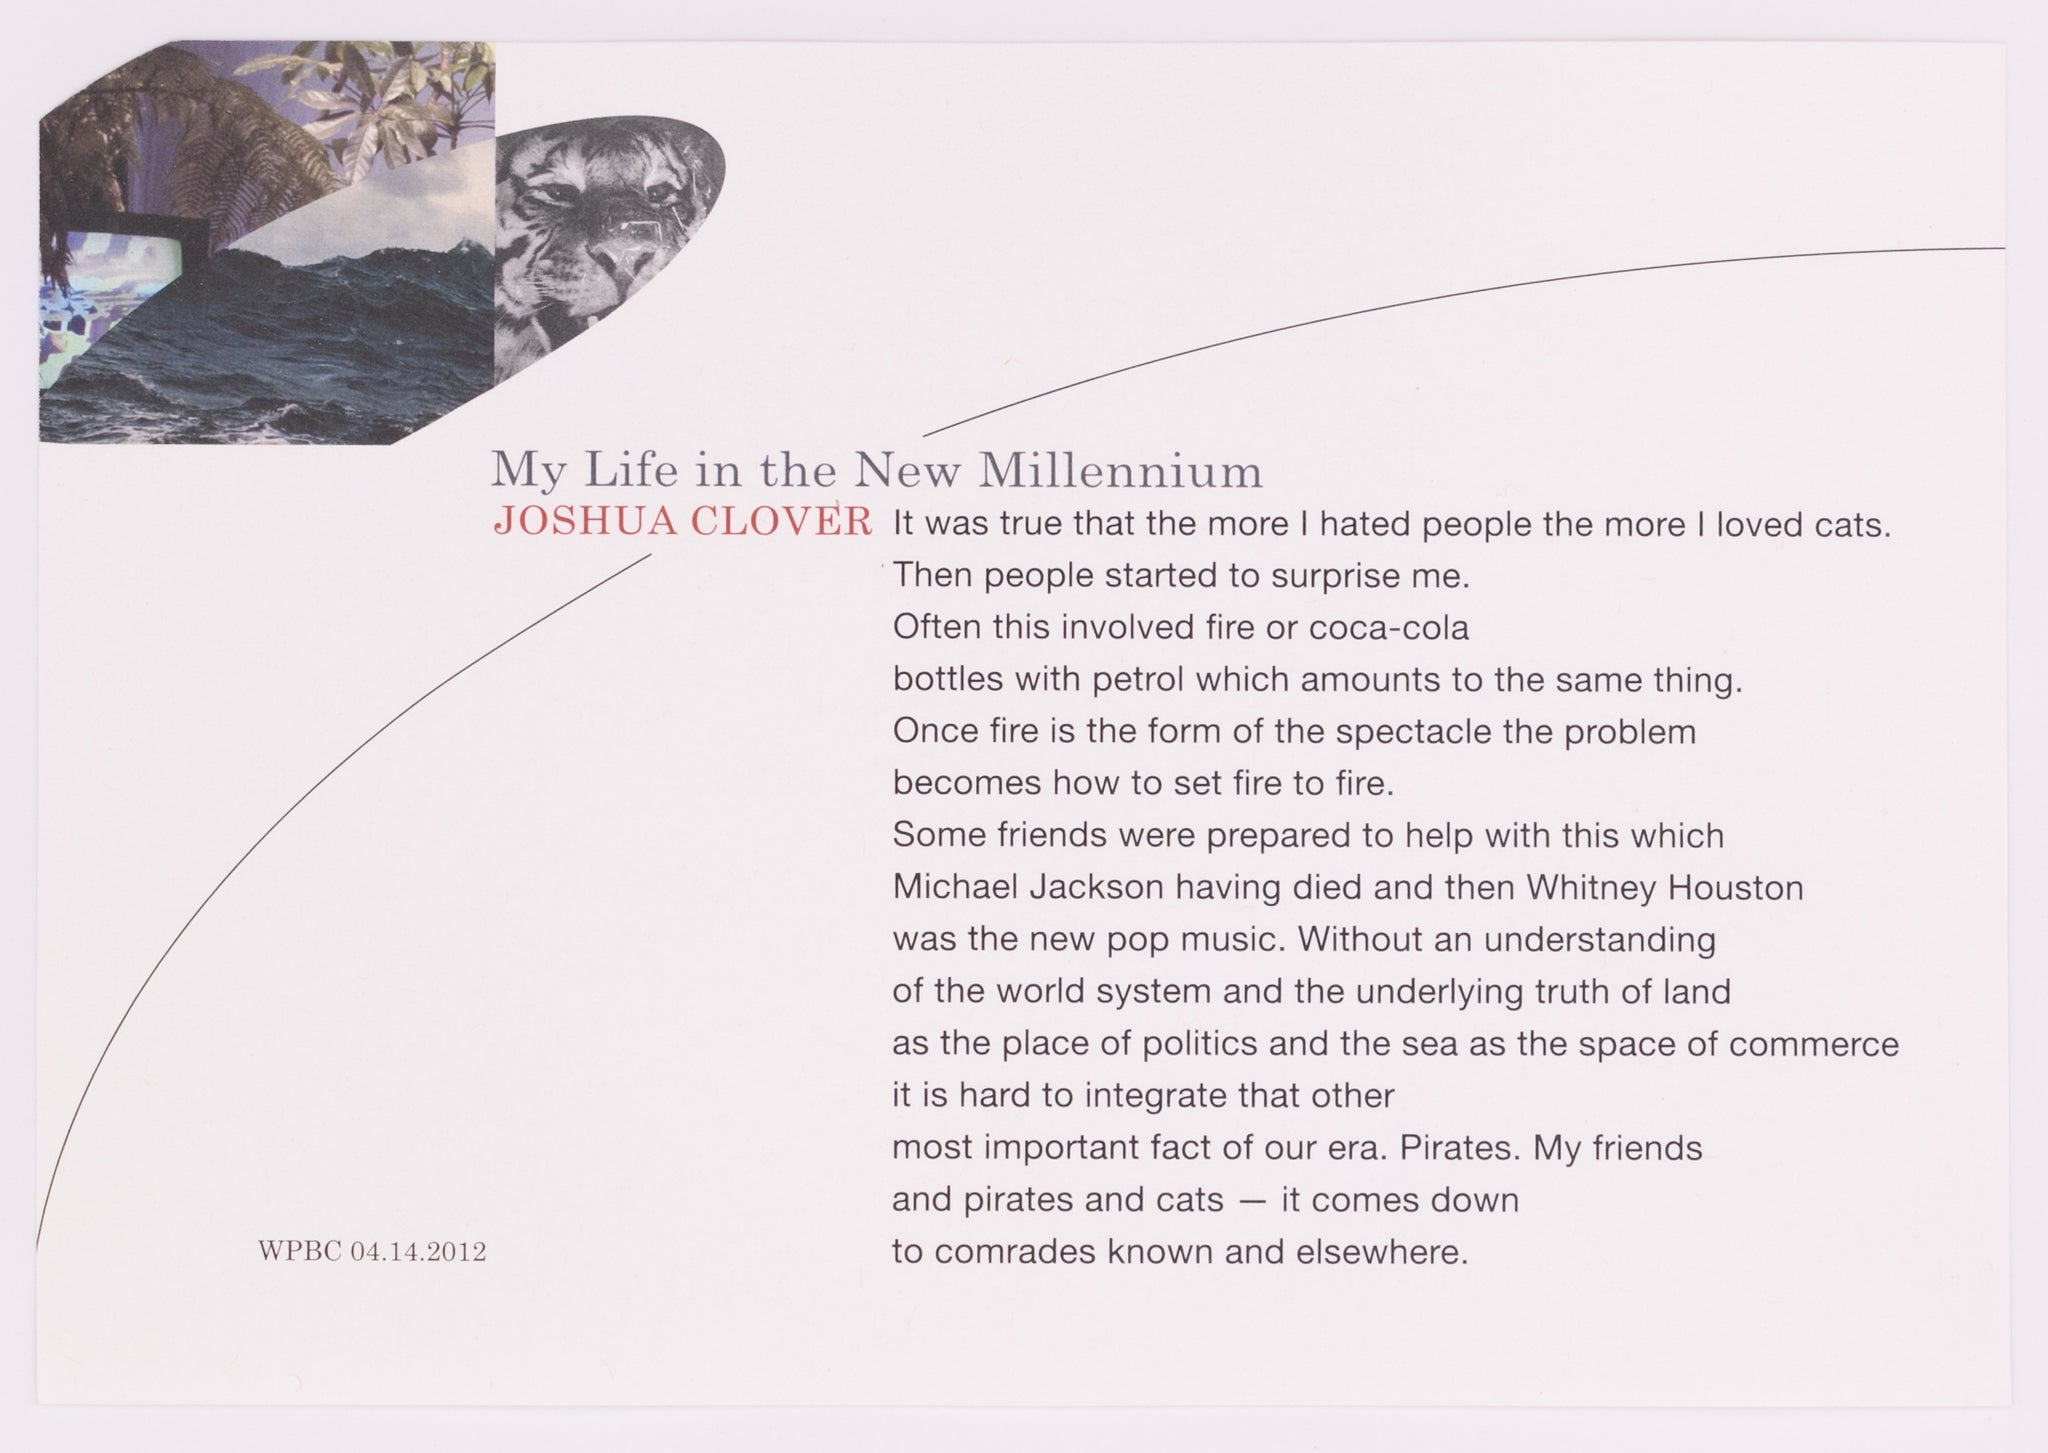 My Life in the New Millennium by Joshua Clover (Unsigned)